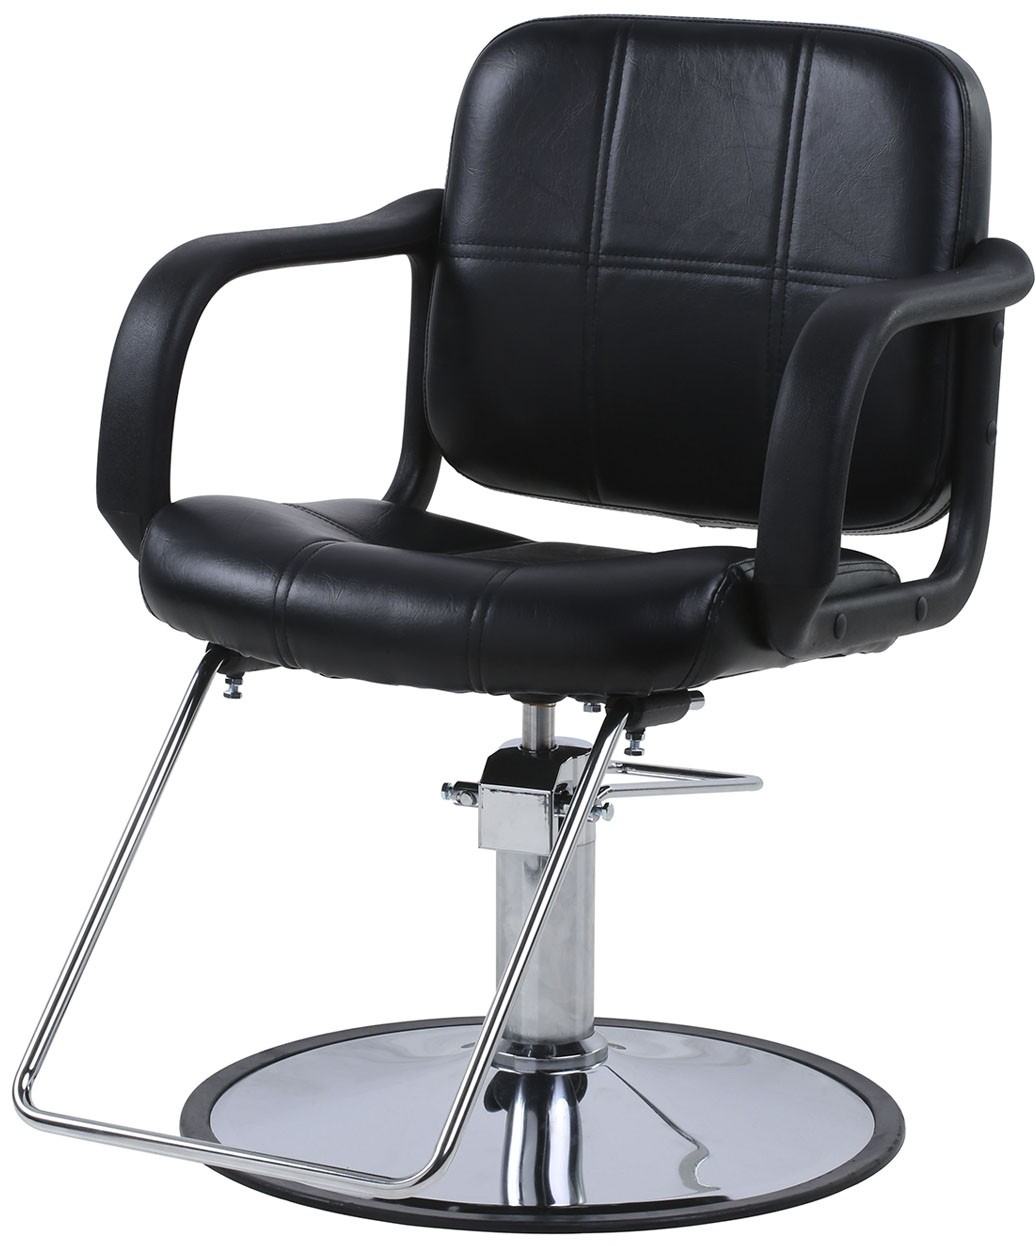 Used Salon Chair Hydraulic Salon Styling Chair Chris Styling Chair And Pump